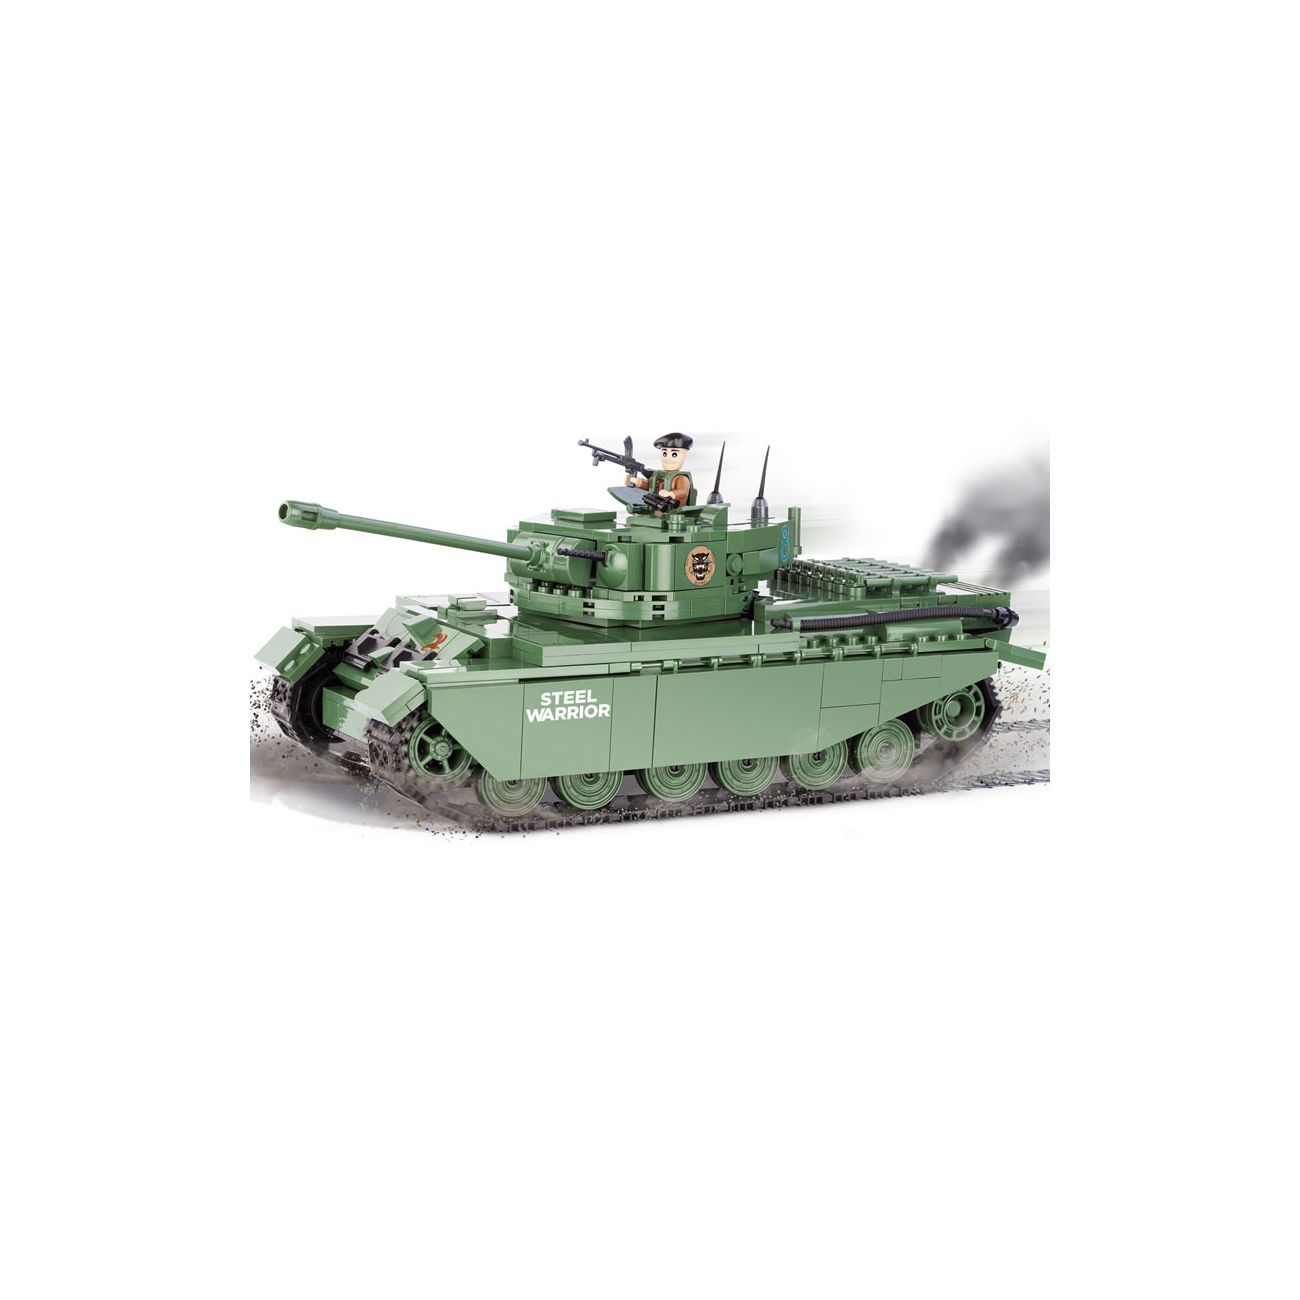 Cobi World Of Tanks Roll Out Small Army Bausatz Panzer Centurion I 610 Teile 3010 0